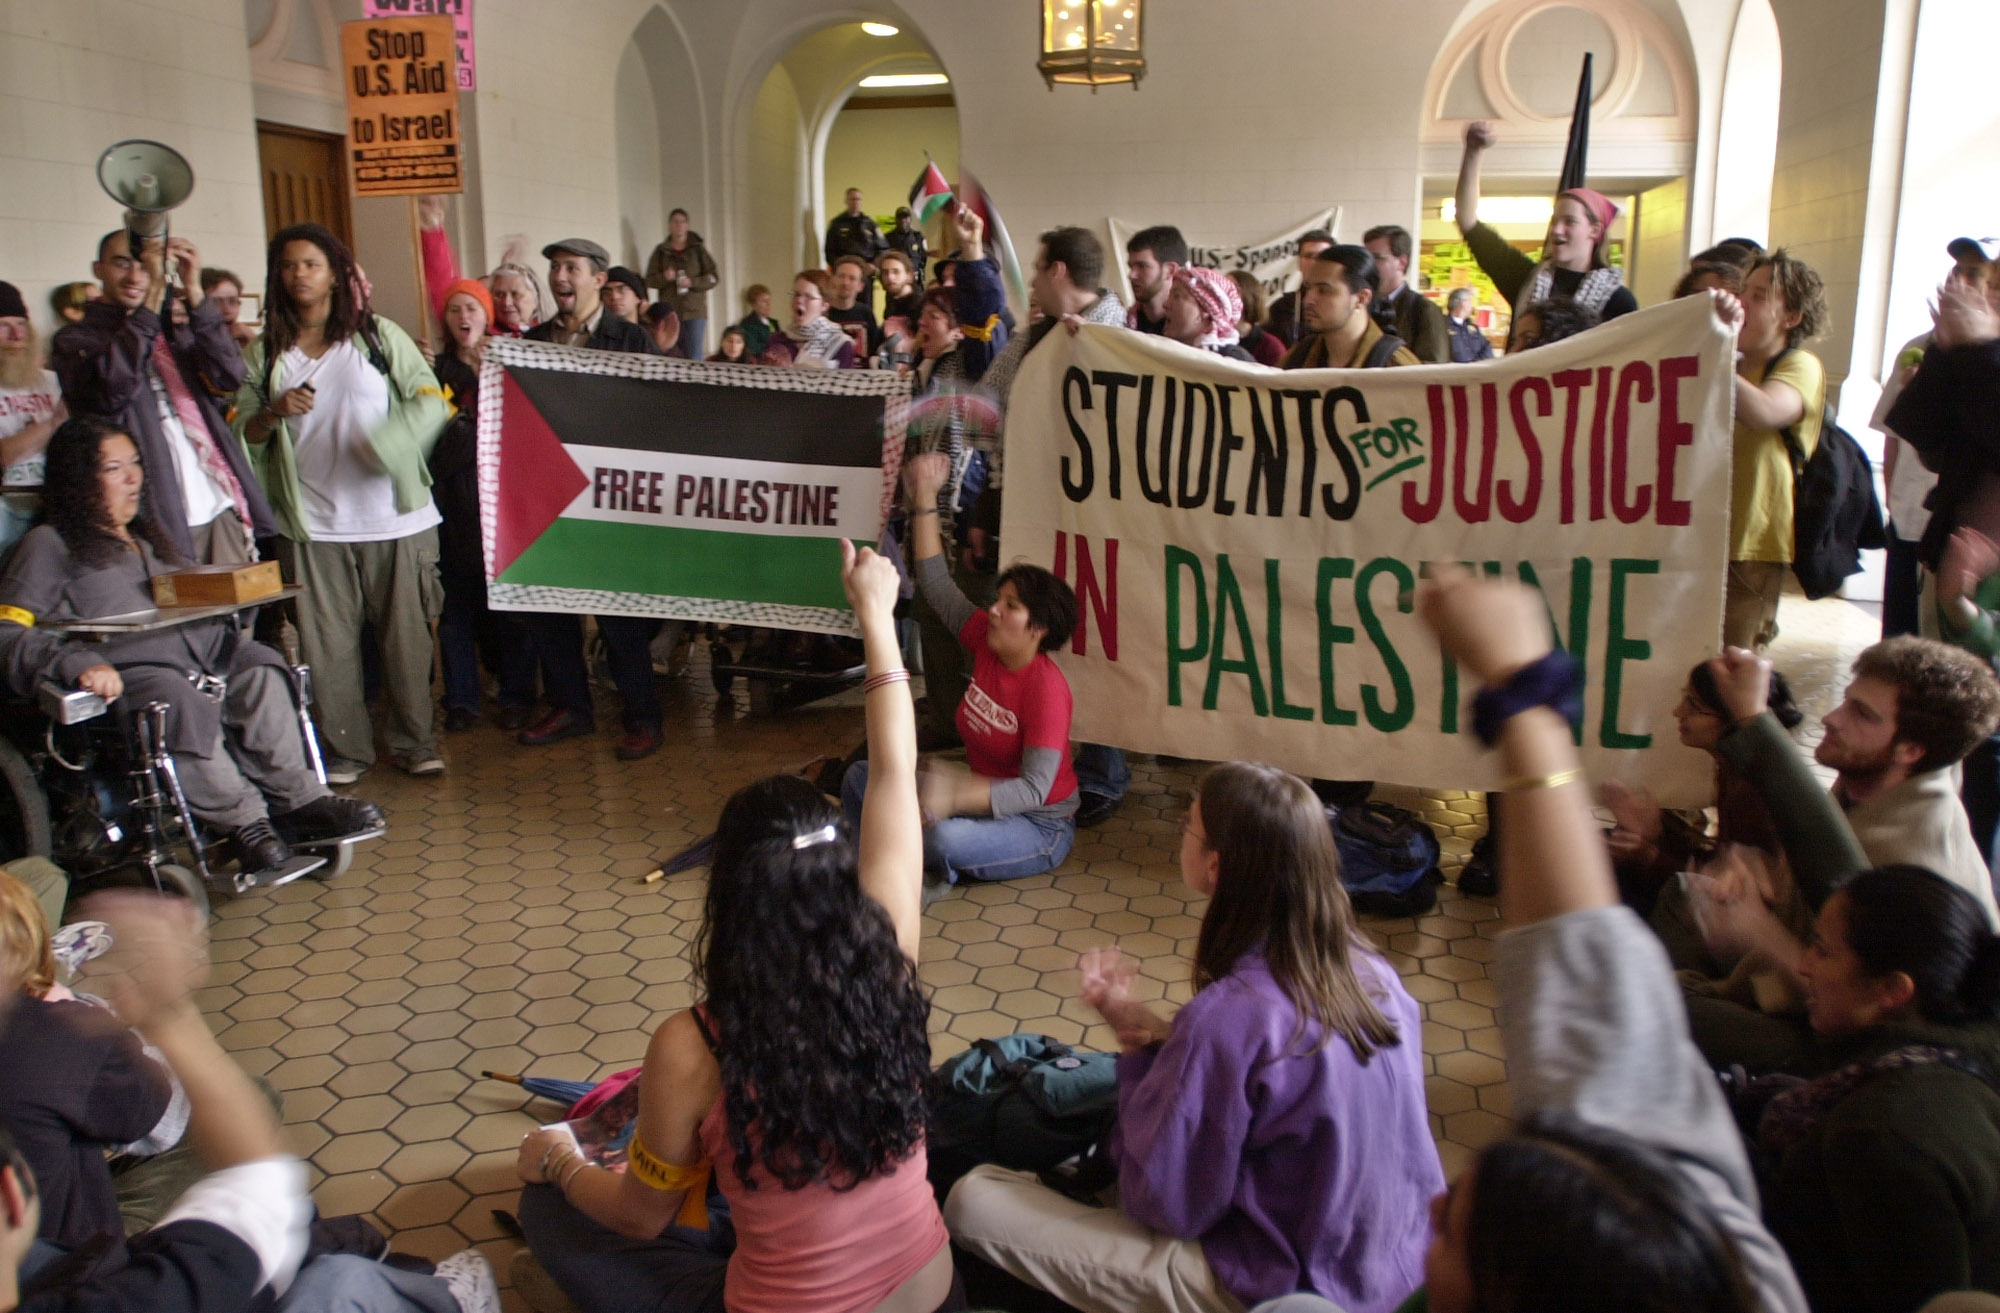 Anti-Semitic students at the University of California occupy a building where campus Jewish groups were holding a memorial service for Holocaust victims. Similar protests on campuses nationwide have created a virulently anti-Semitic atmosphere for young Jewish students.